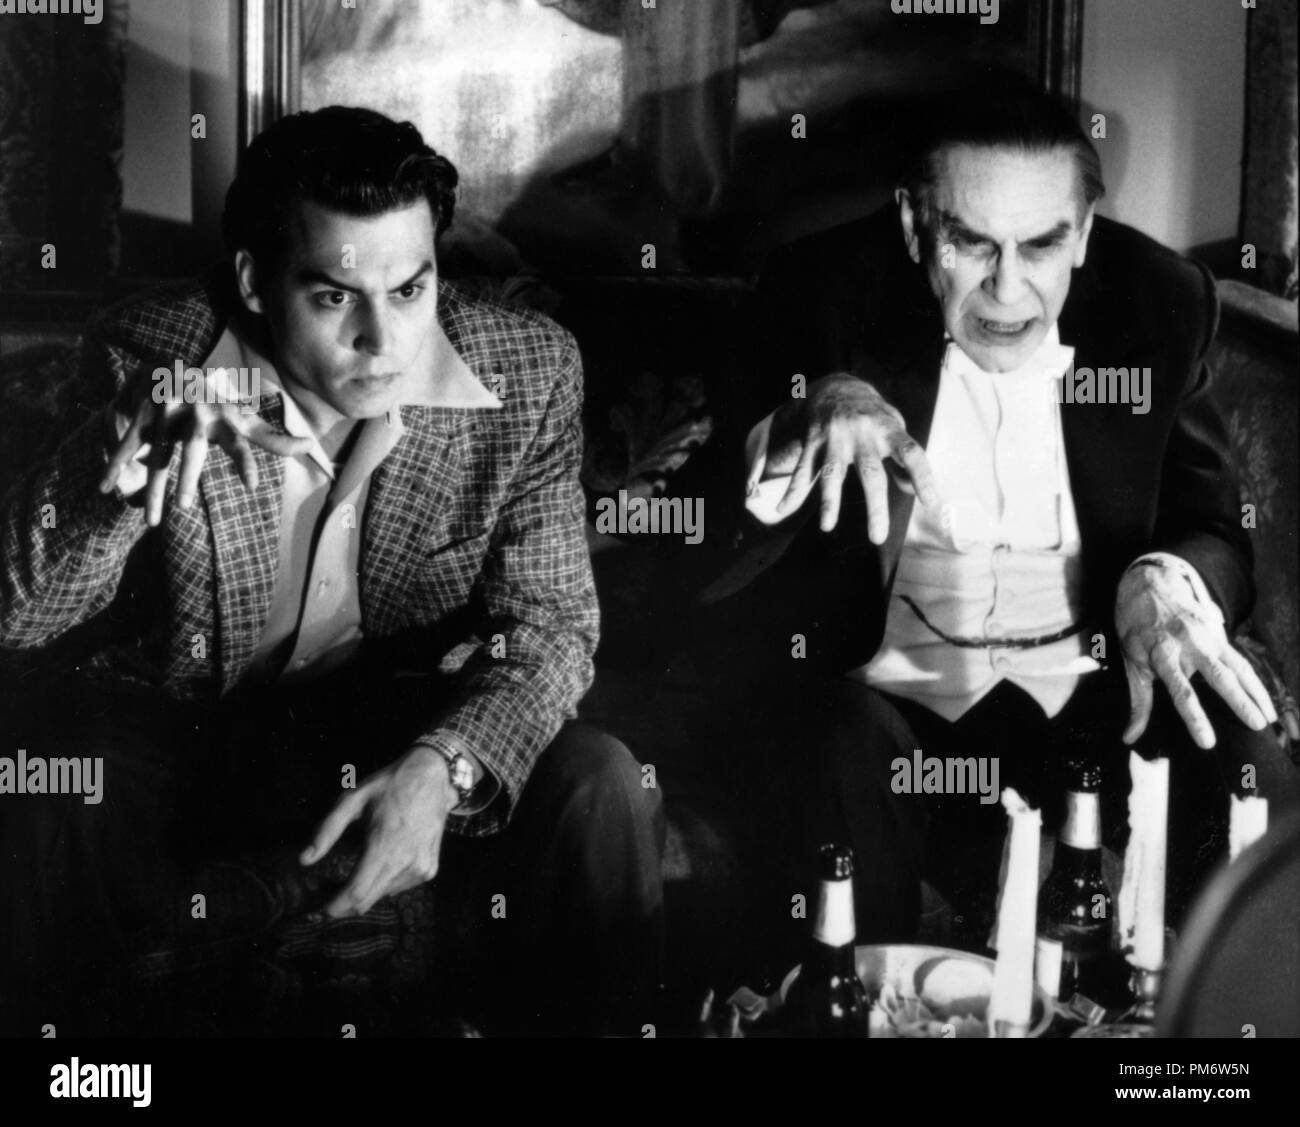 Film Still from 'Ed Wood' Johnny Depp, Martin Landau © 1994 Touchstone Photo Credit: Suzanne Tenner - Stock Image